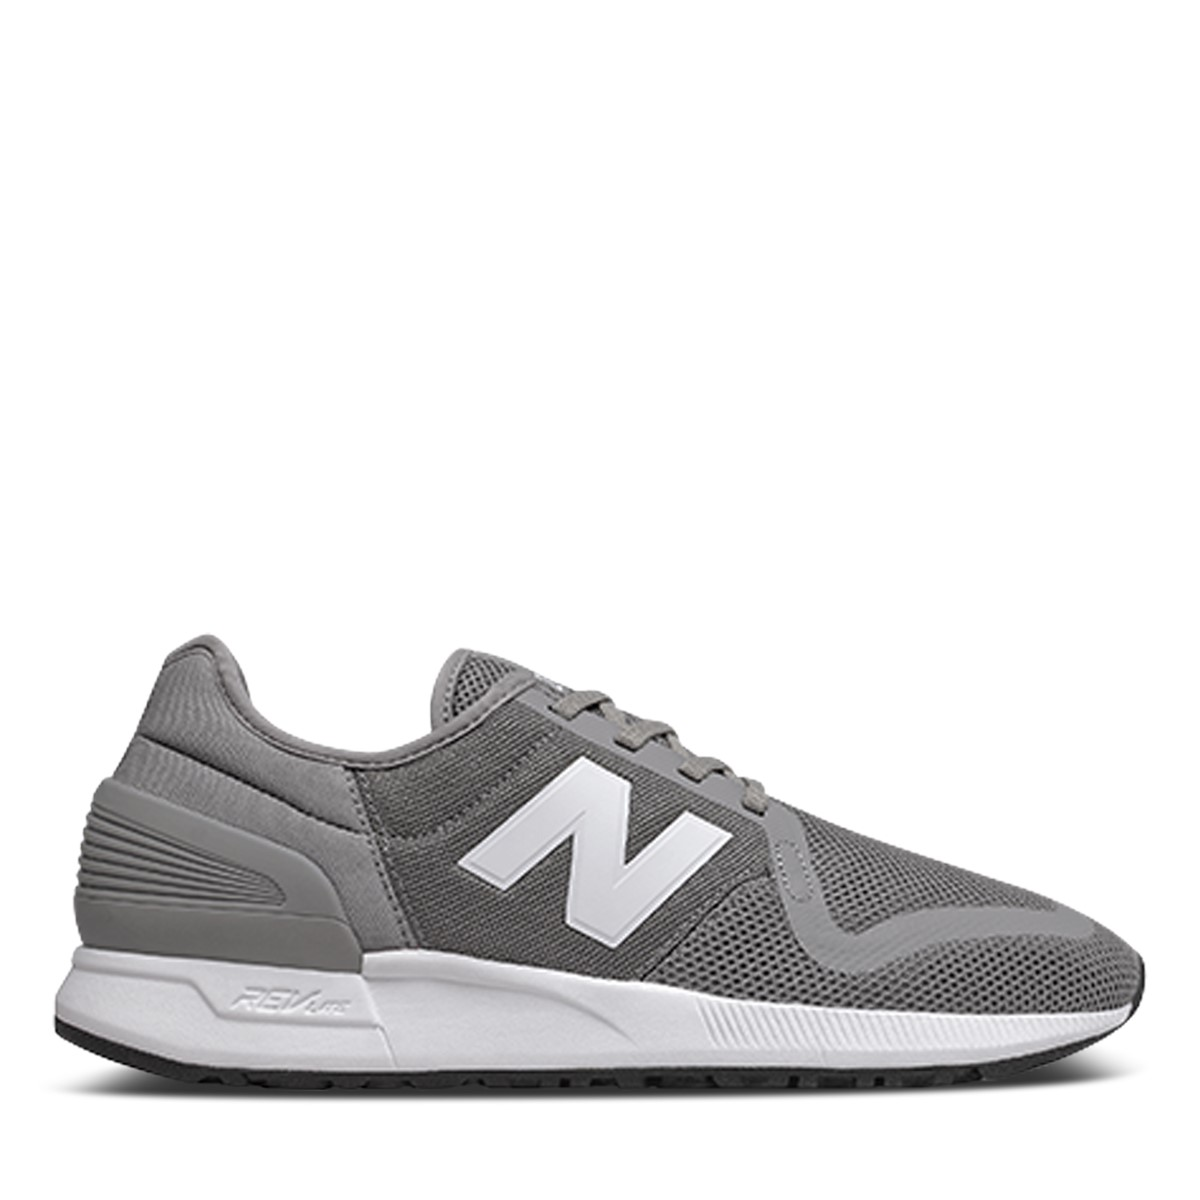 Men's 247 Sneakers in Grey